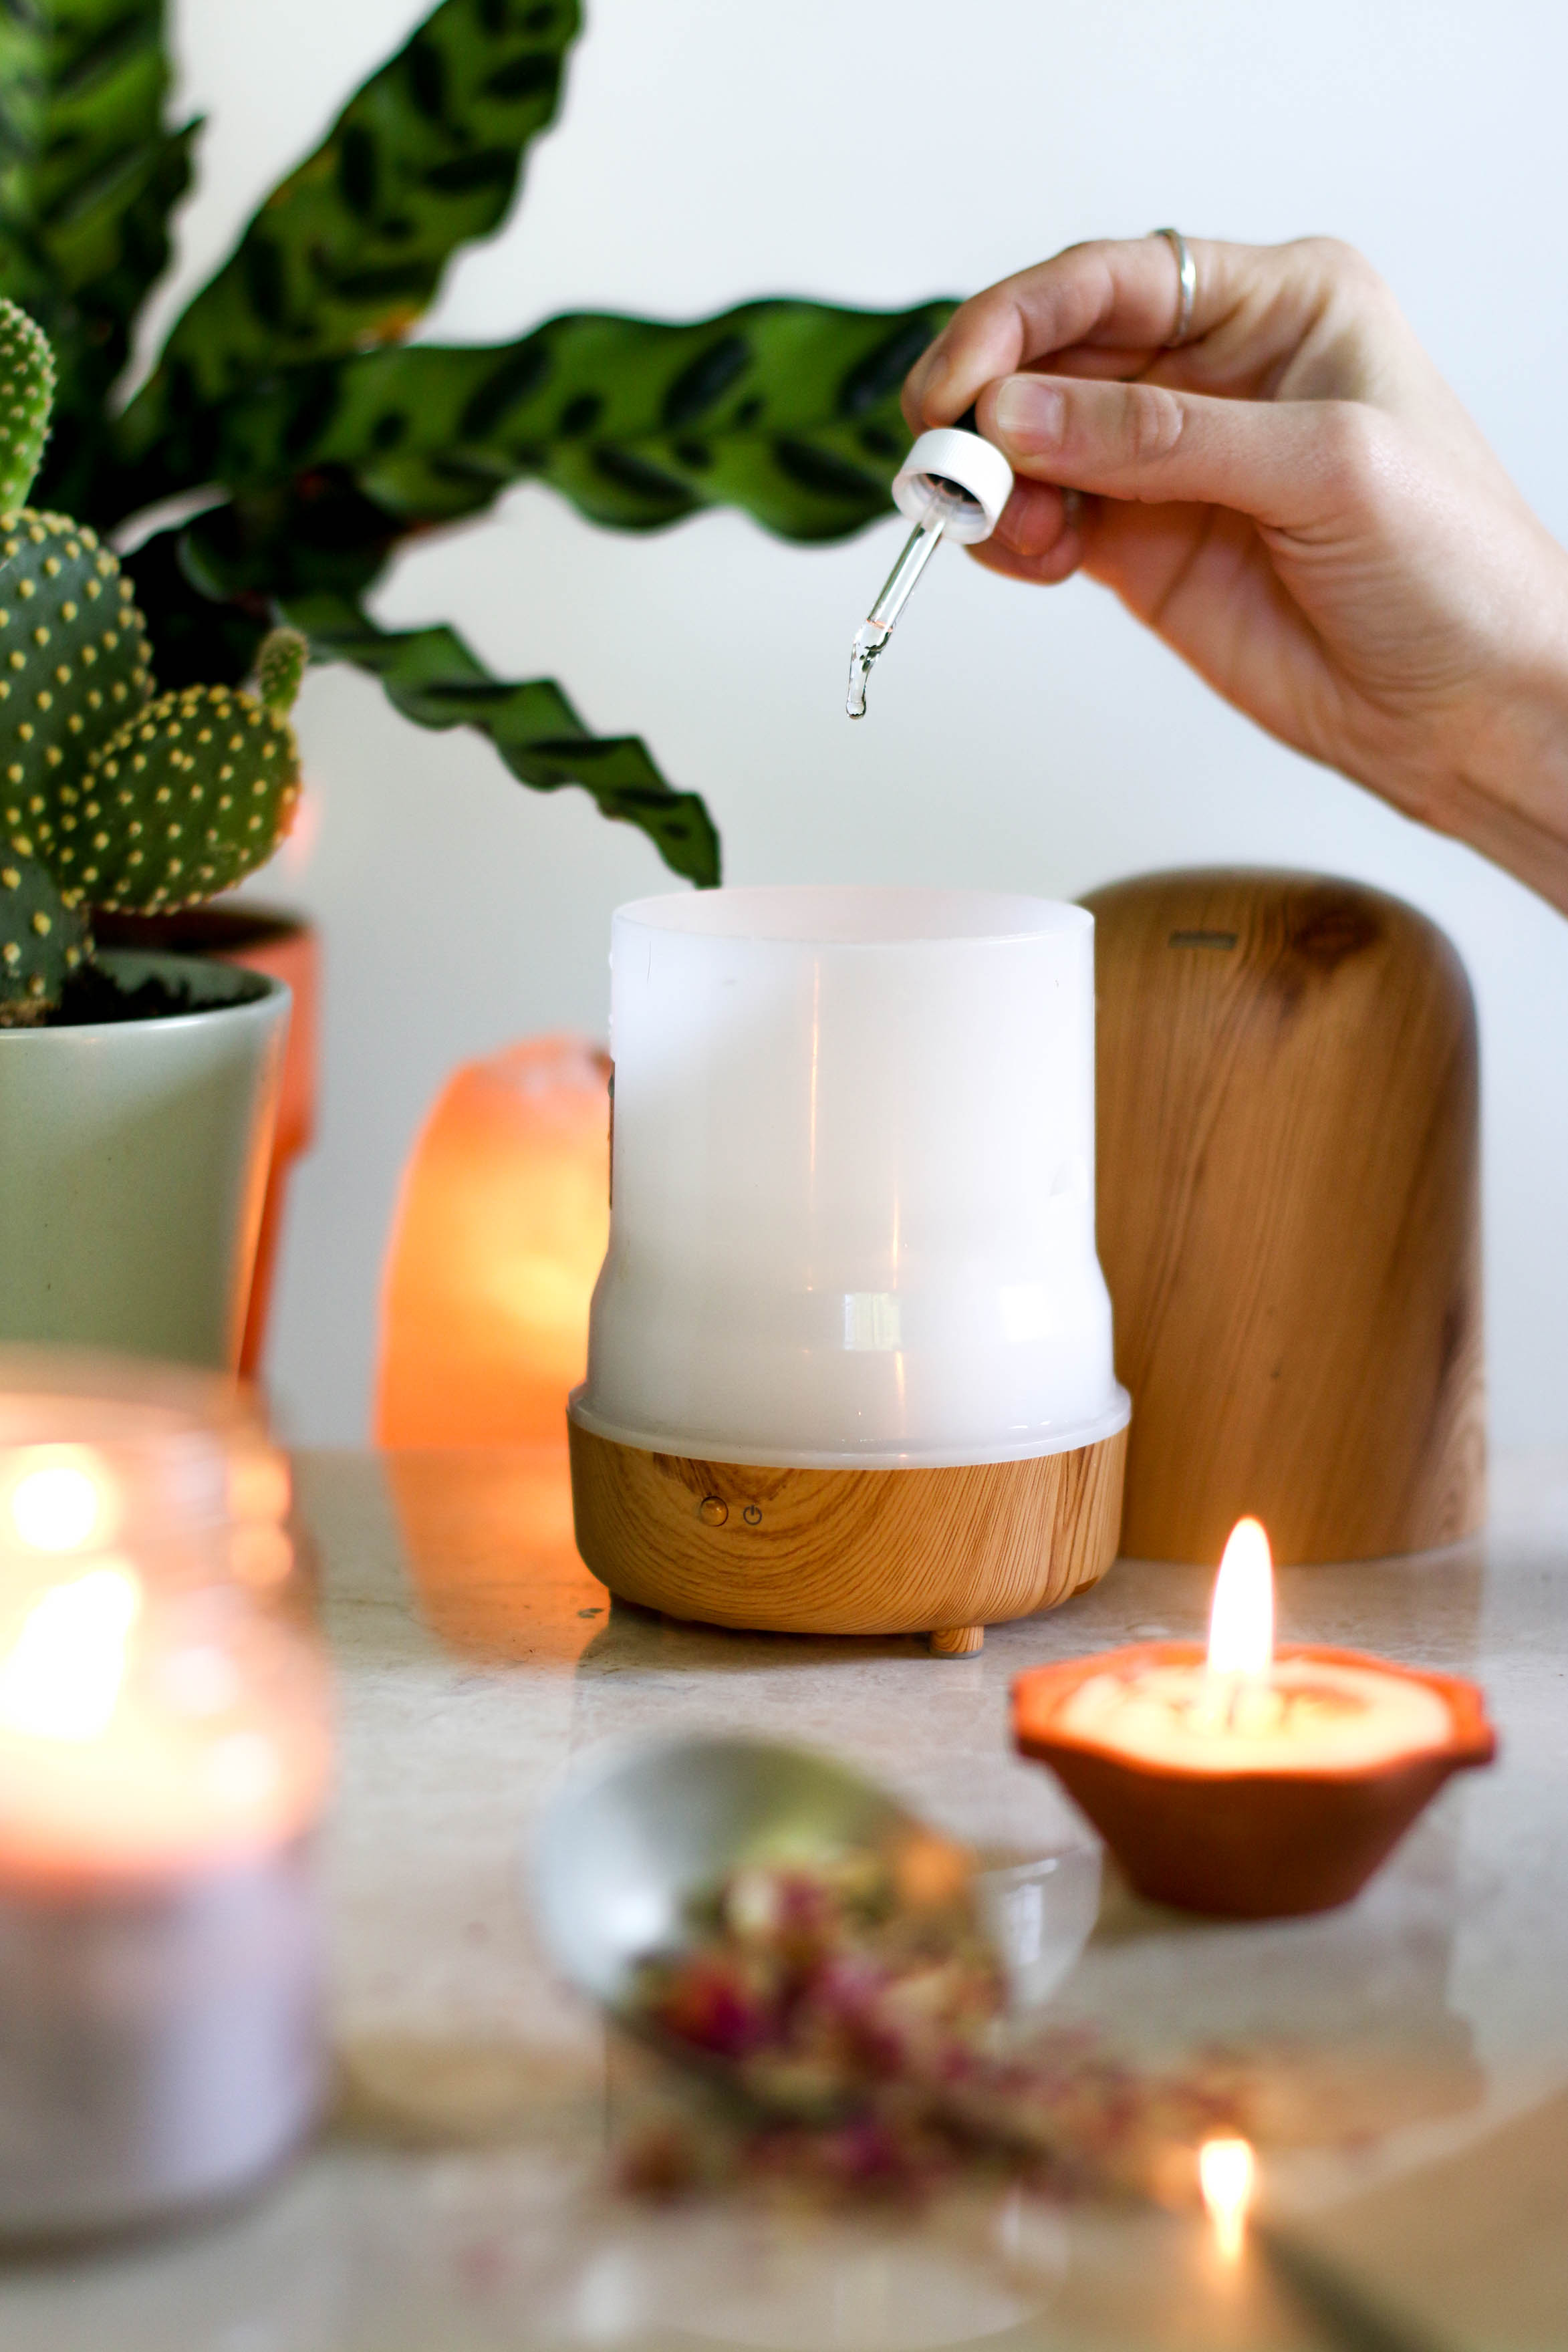 Hand-dropping-oil-into-essential-oil-diffuser-with-candles-and-plants